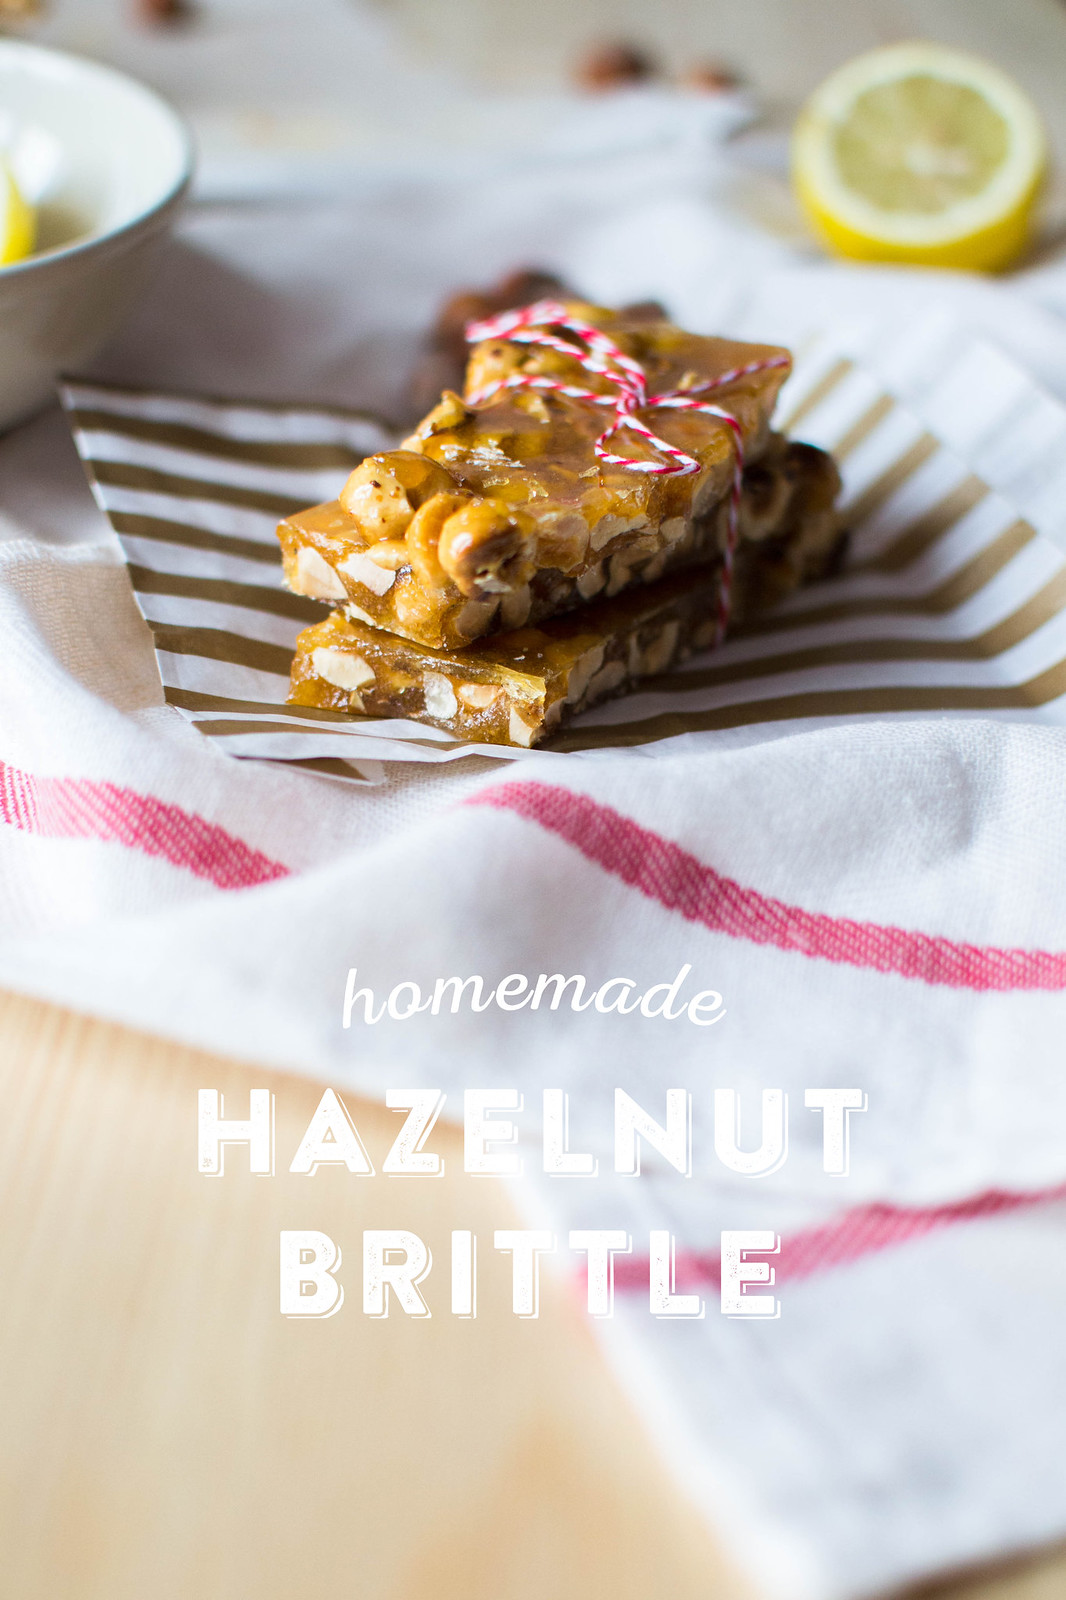 Homemade Hazelnut Brittle